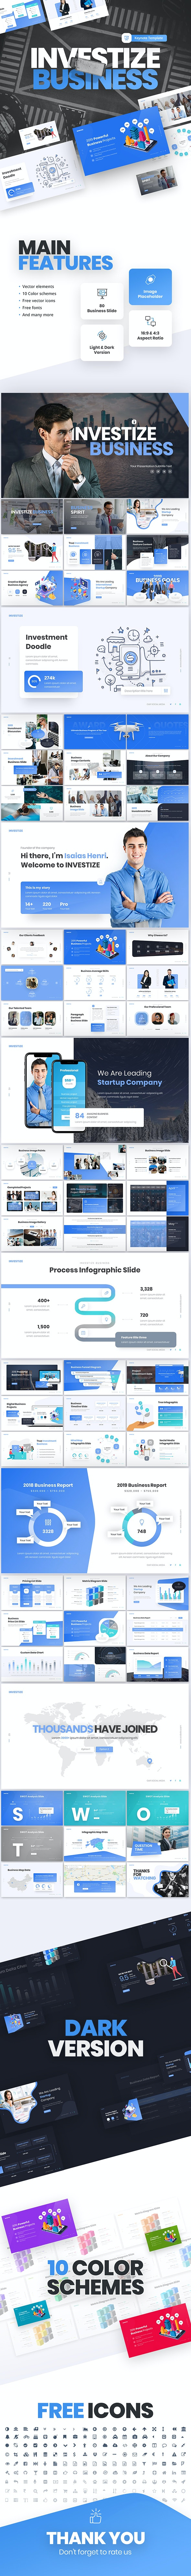 Investize Business Multipurpose Keynote Presentation Template - Business PowerPoint Templates